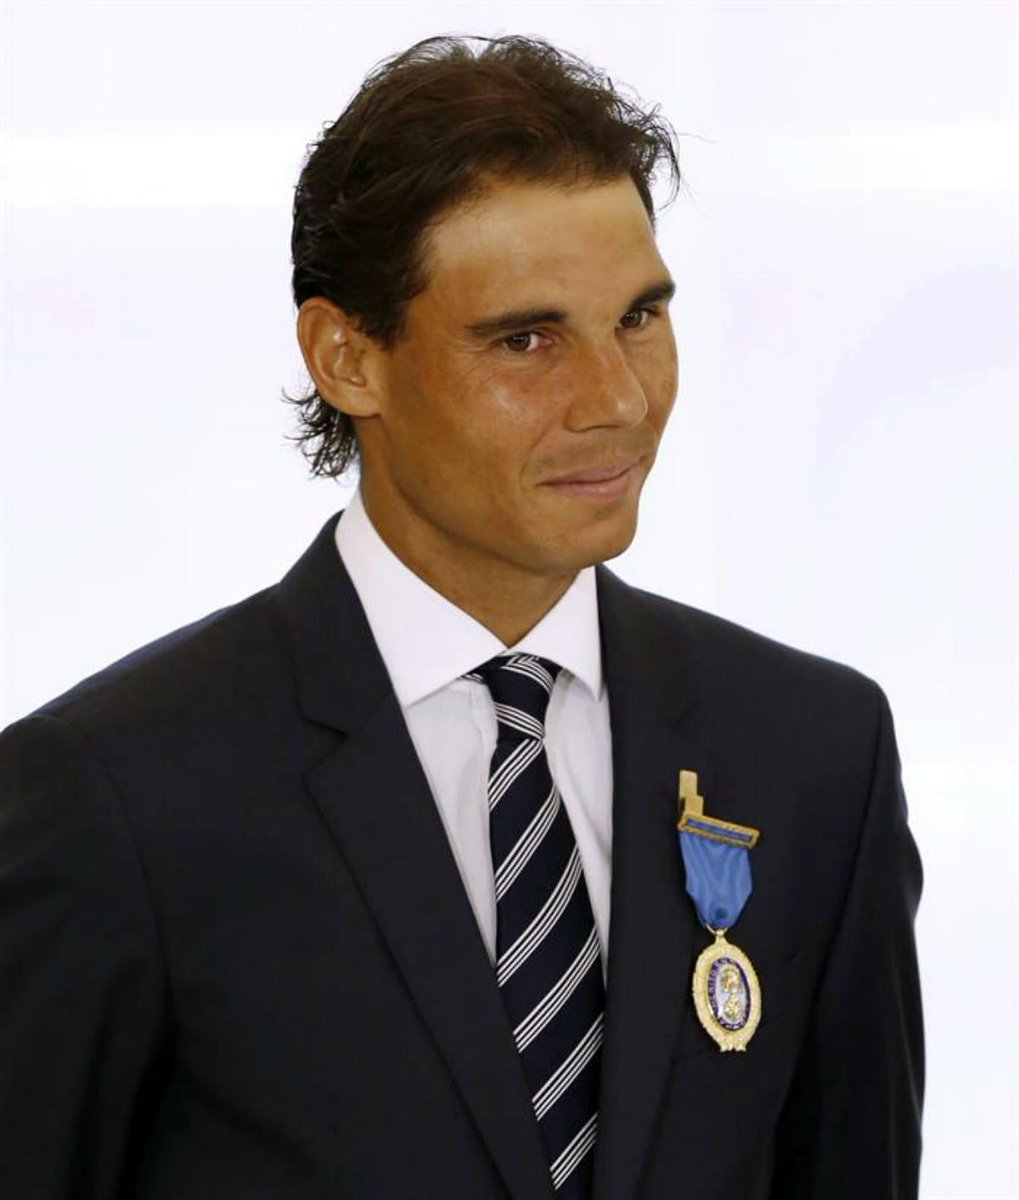 @b1pr @RafaelNadal a proud moment for all who love and admire him! ¡Felicidades! #Legend